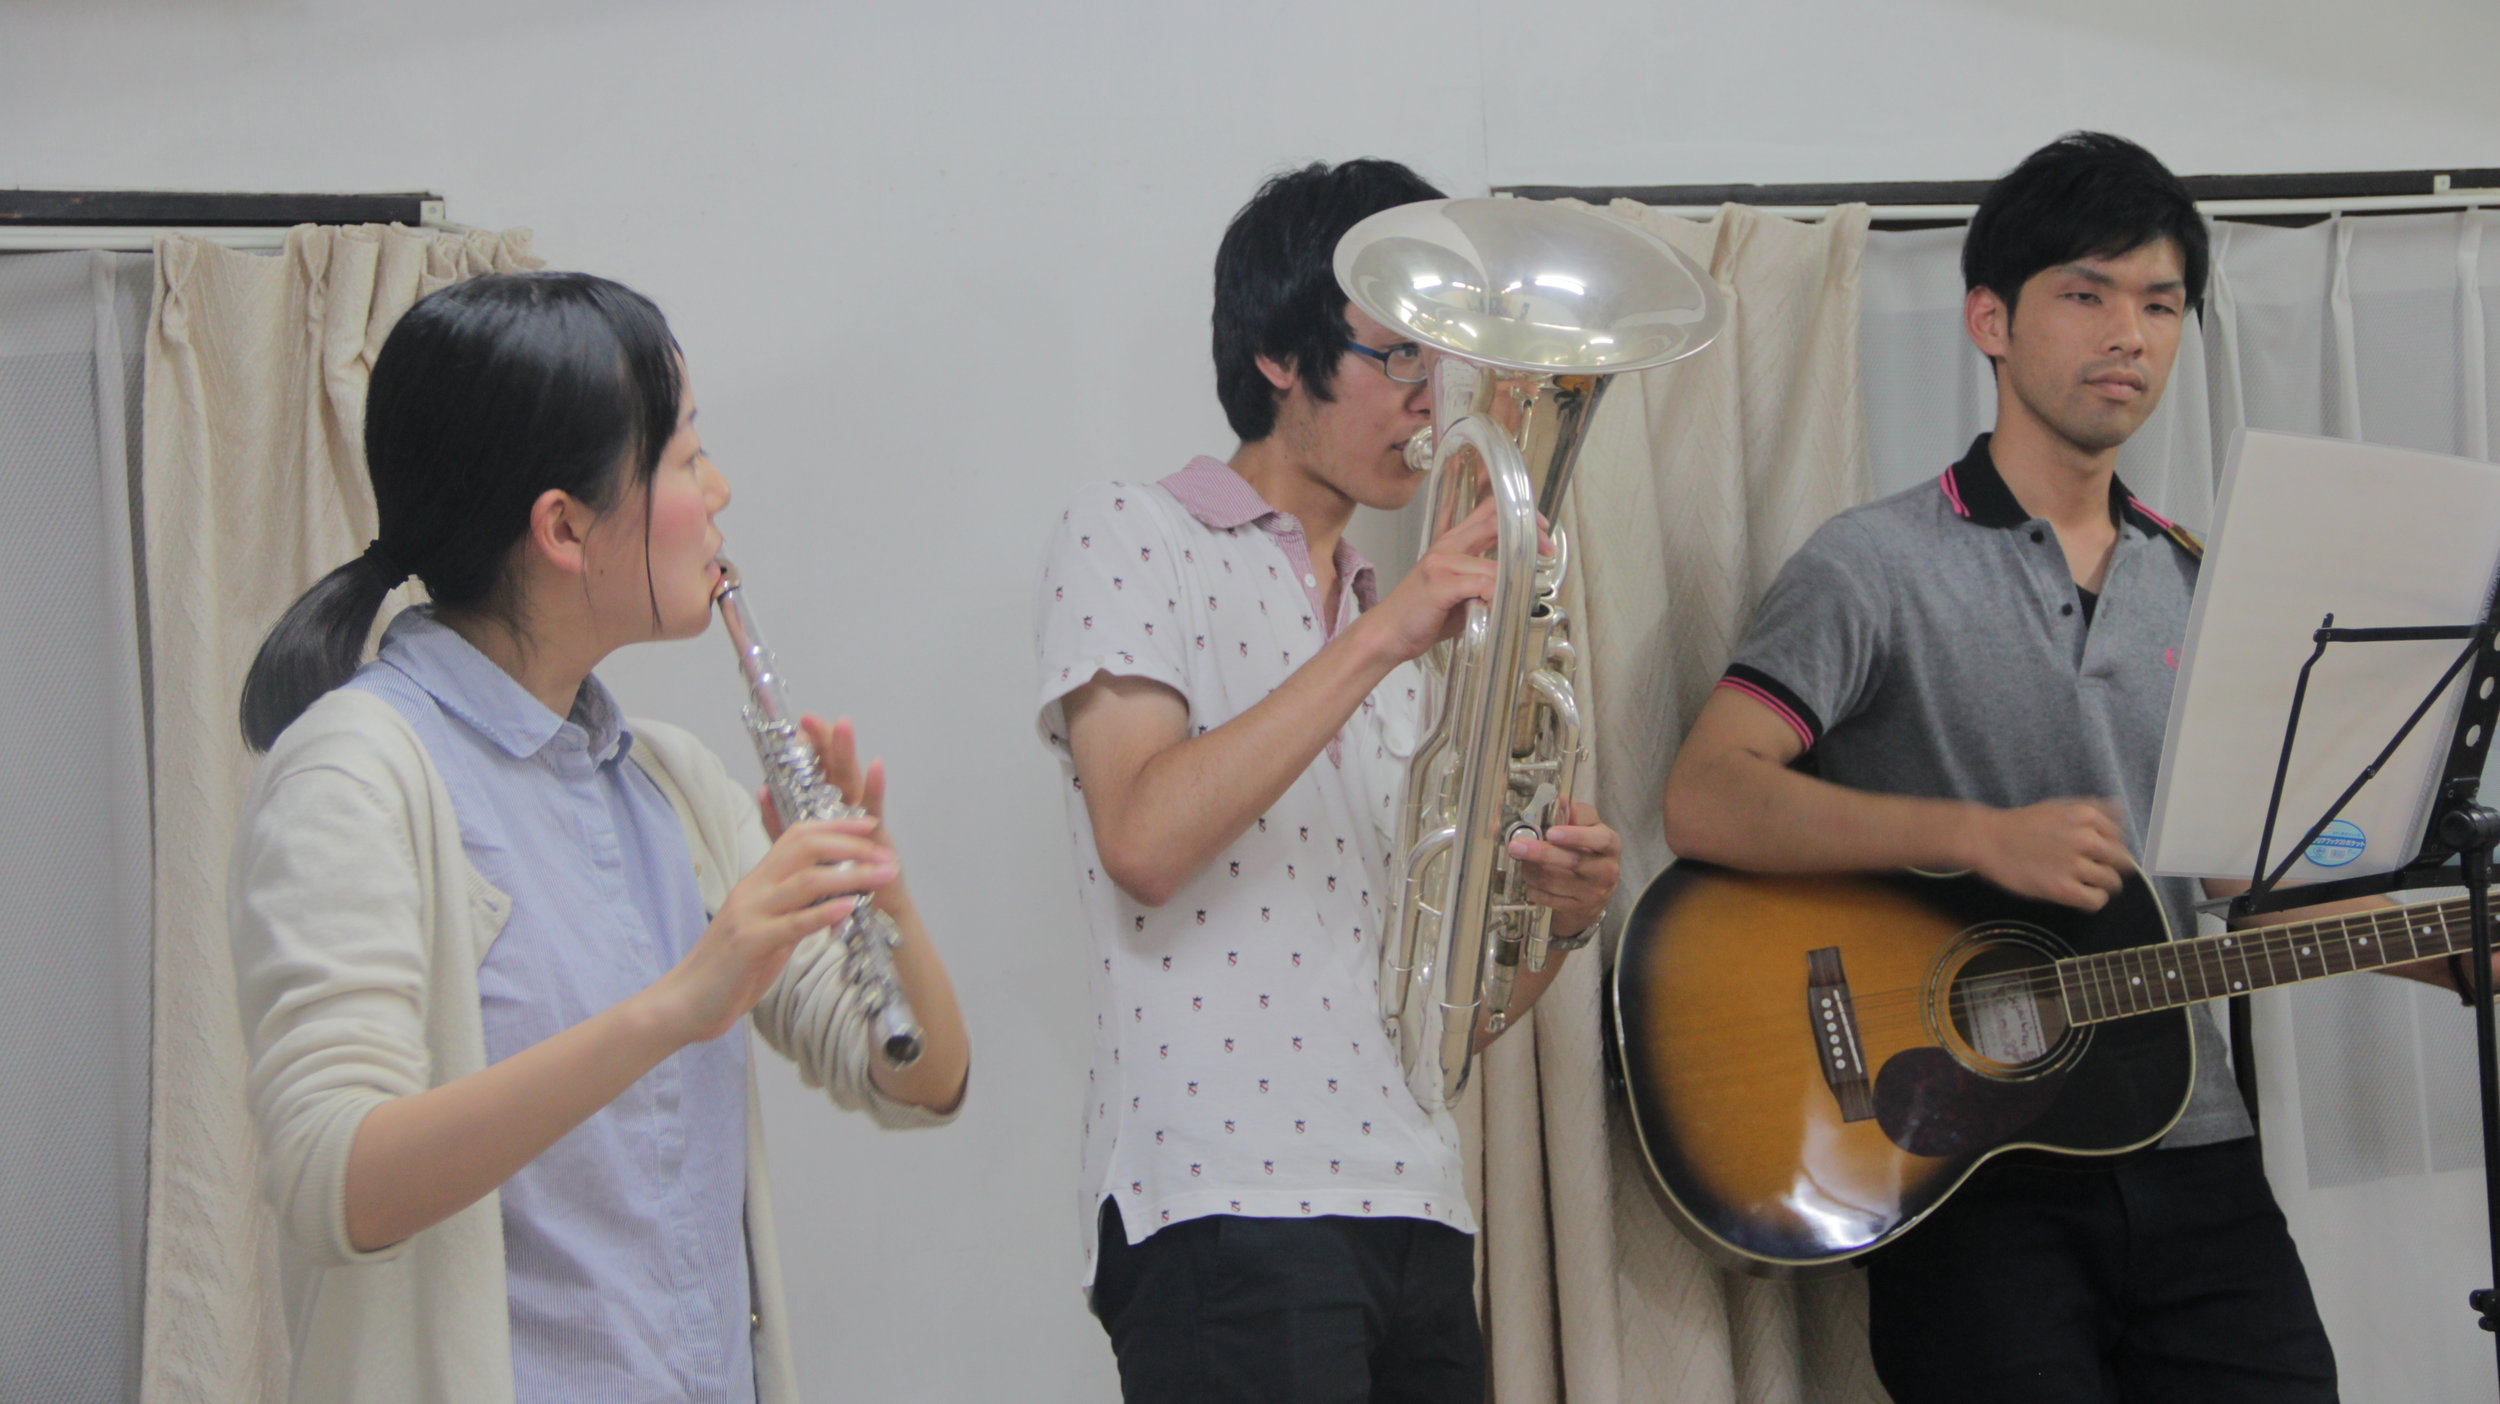 The CARP students in Kyoto are very talented and musical!